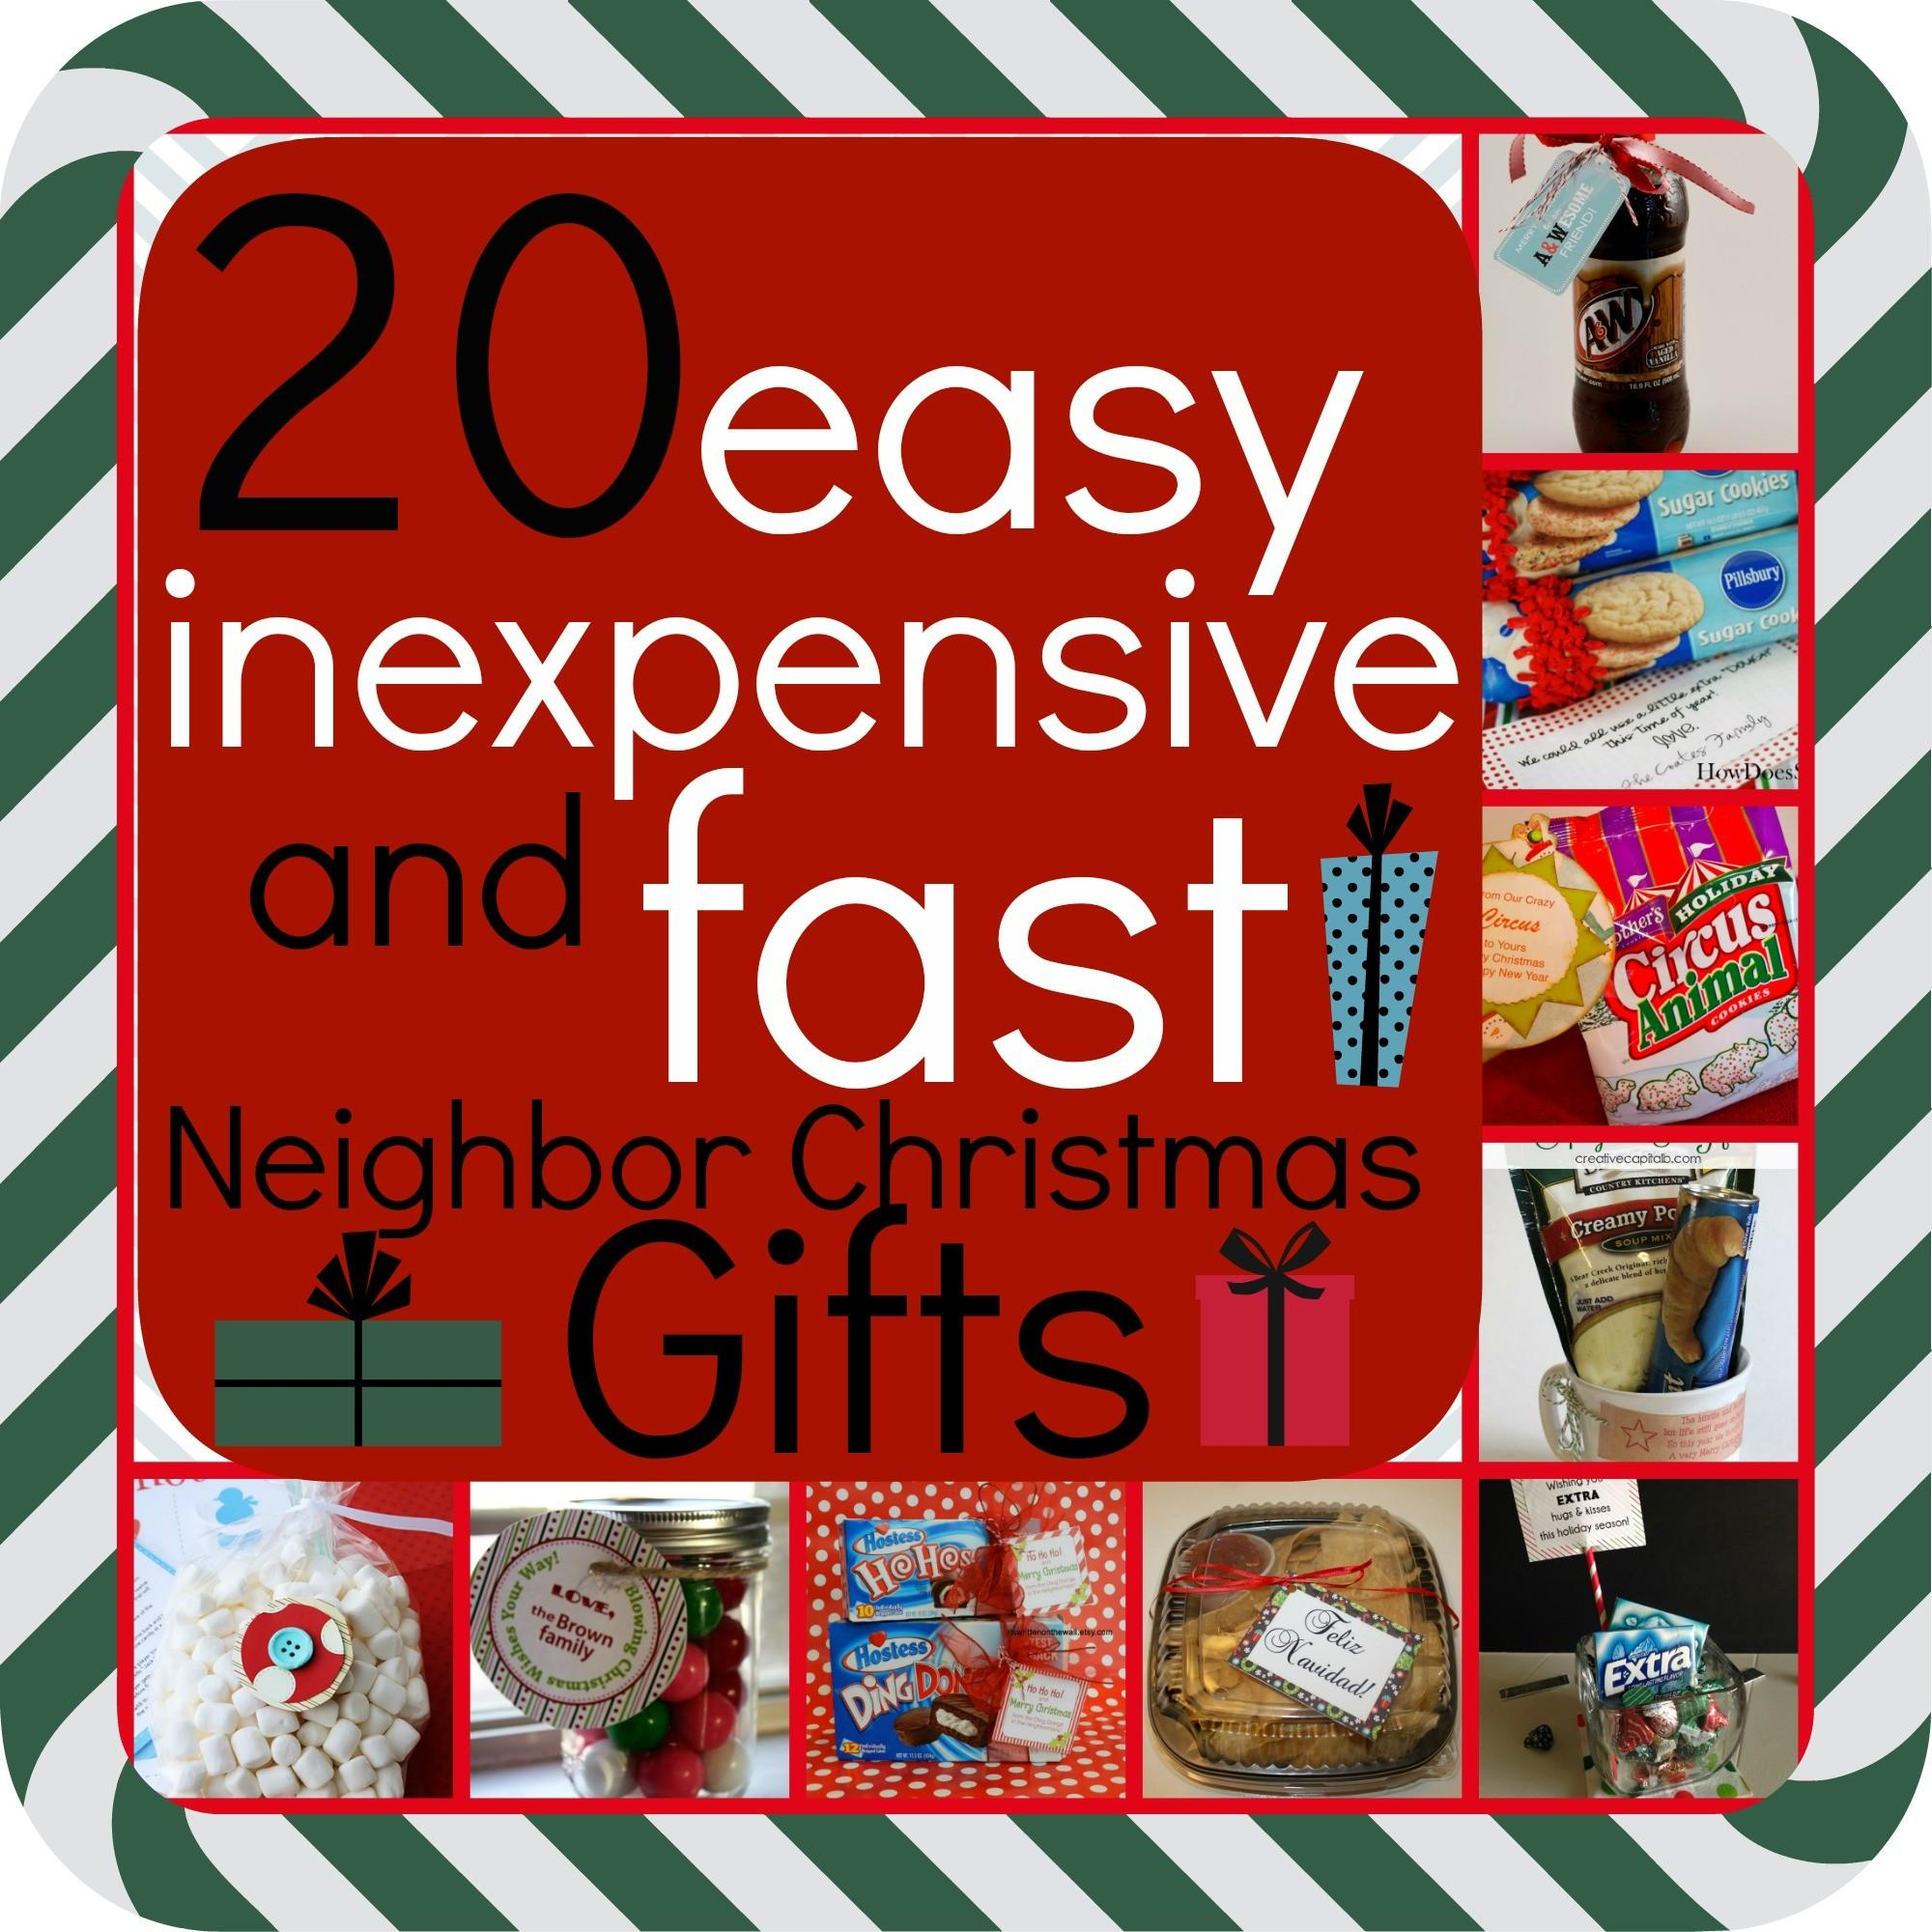 Best Photos Lds Christmas Neighbor Gifts Cheap